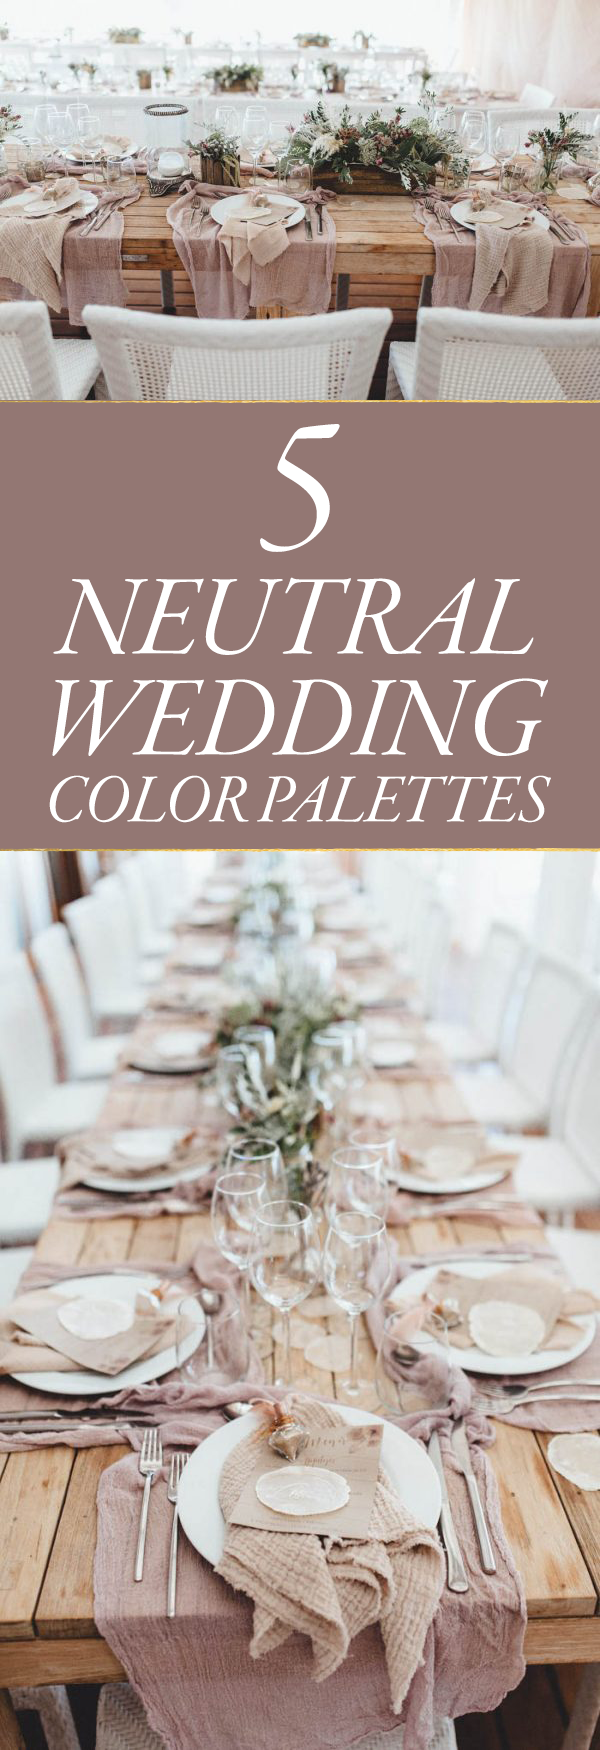 neutral-wedding-color-palettes